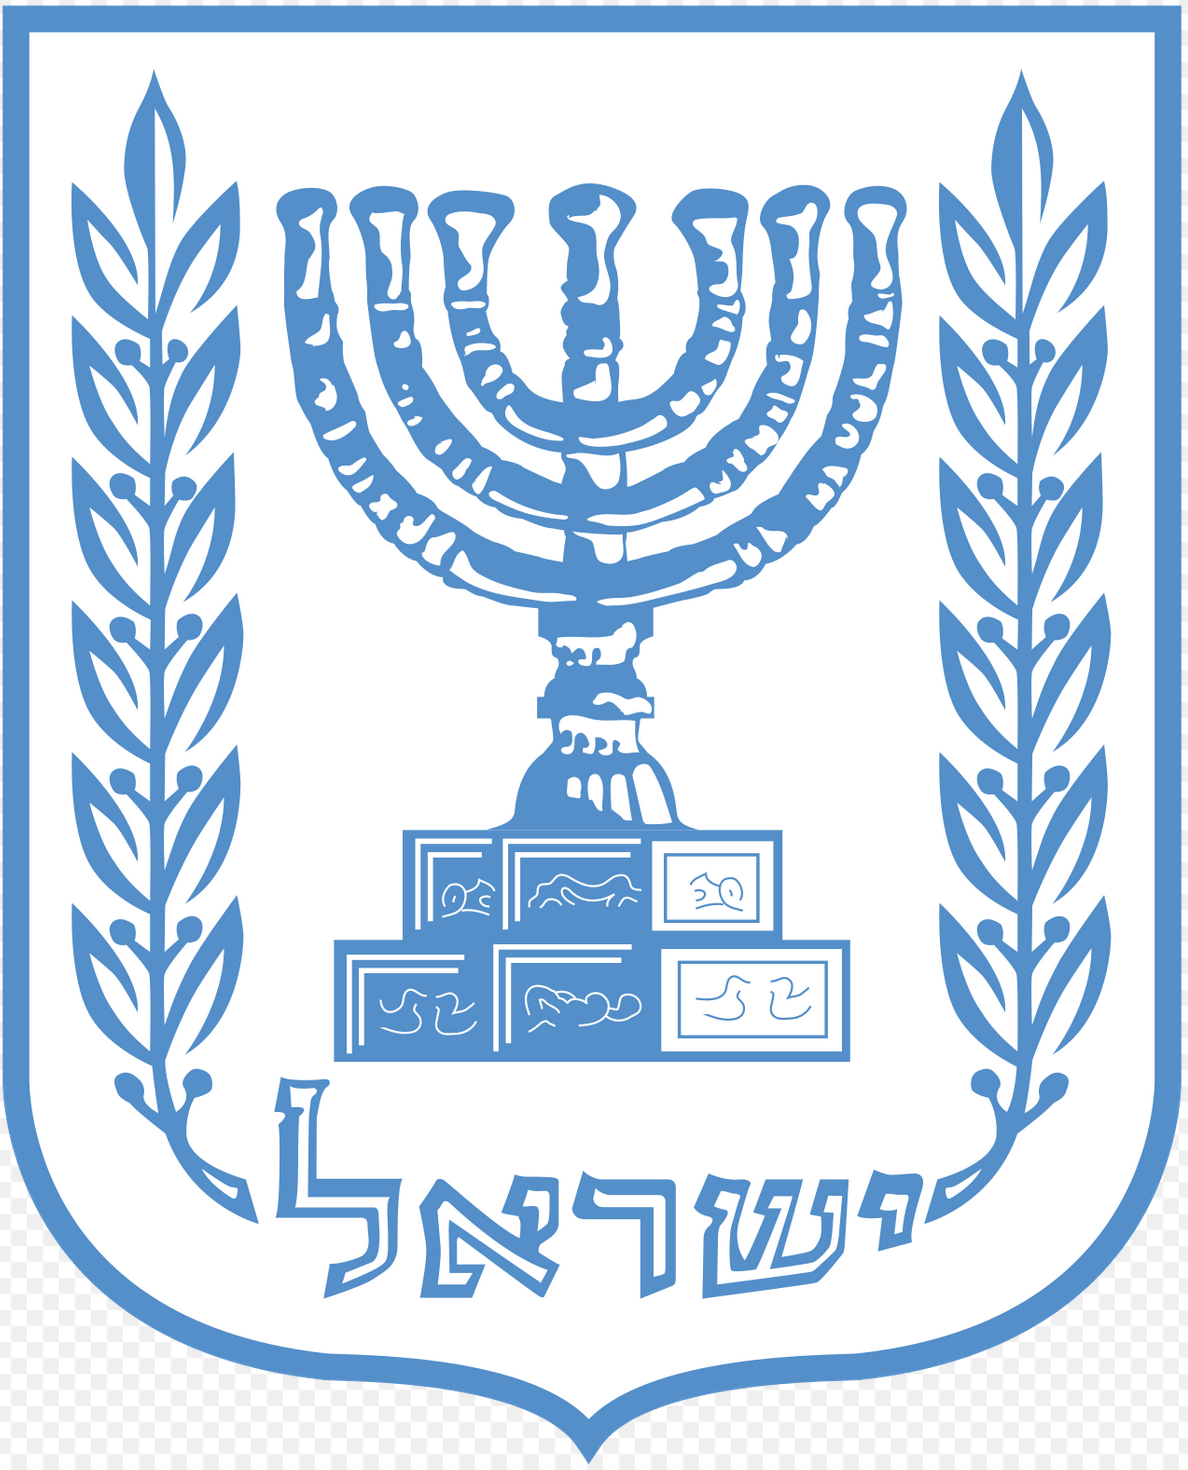 Israel - Privacy Protection (Transfer of Data to Databases Abroad) Regulations